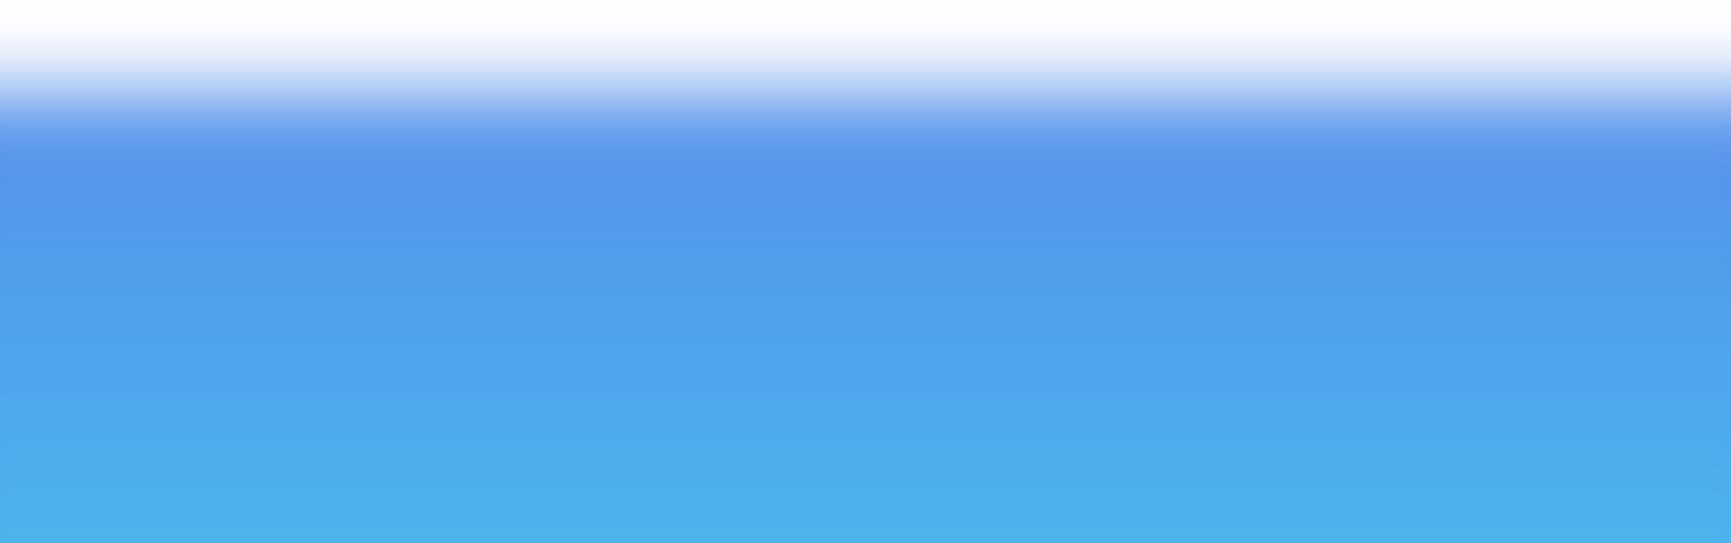 rectangle-footer-02.png